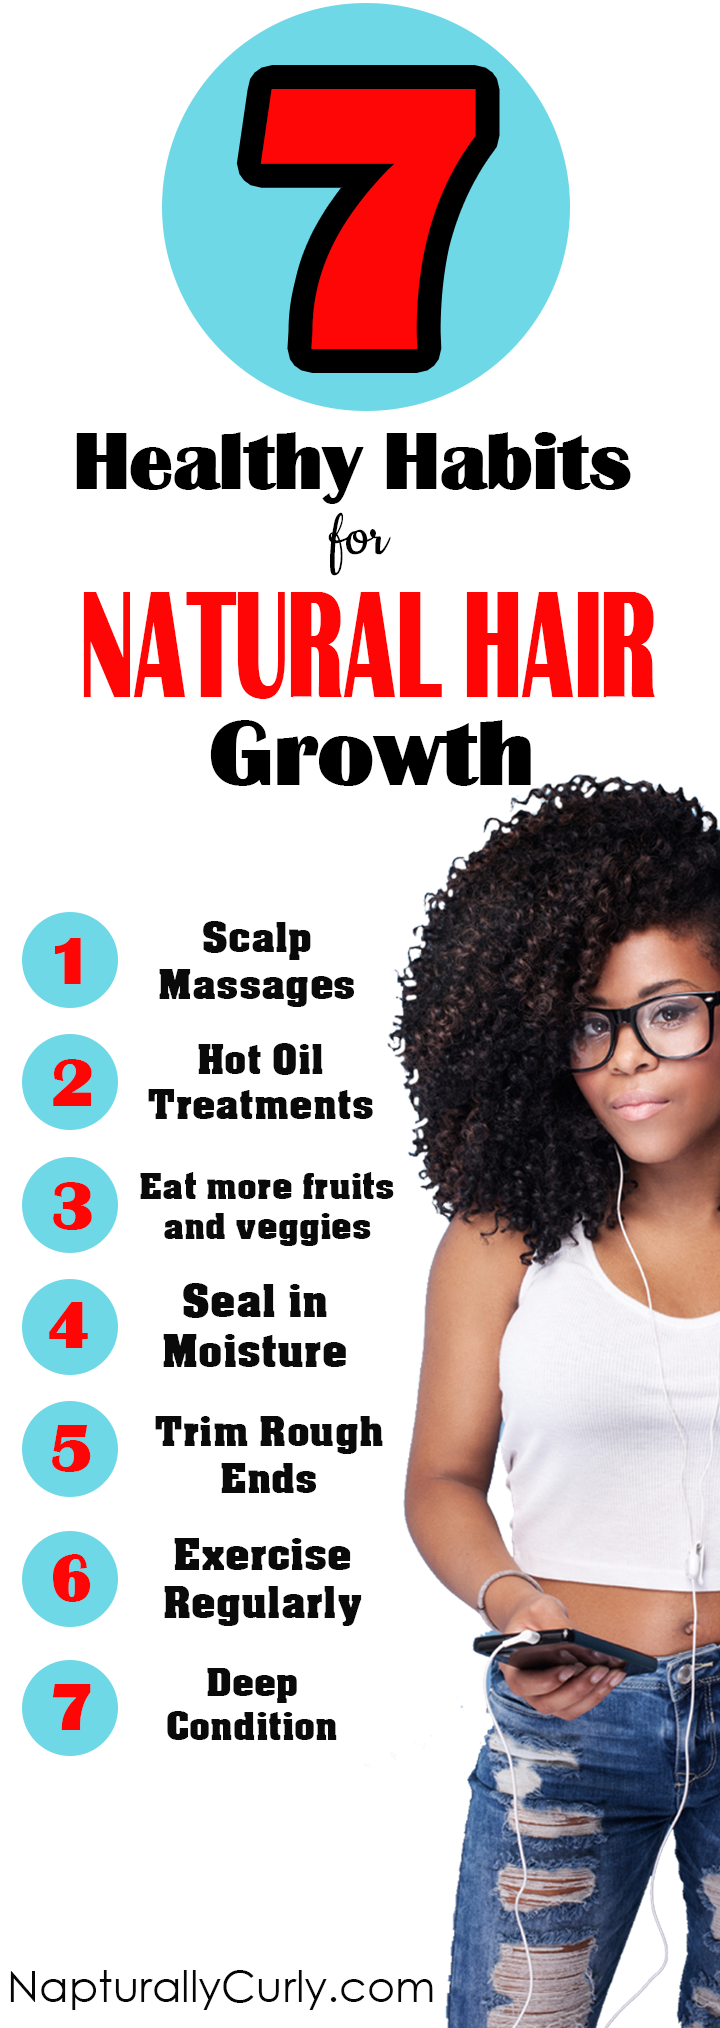 Great Habits To Grow Your Natural Hair Longer Natural Hair Care Tips Natural Hair Styles Natural Hair Care